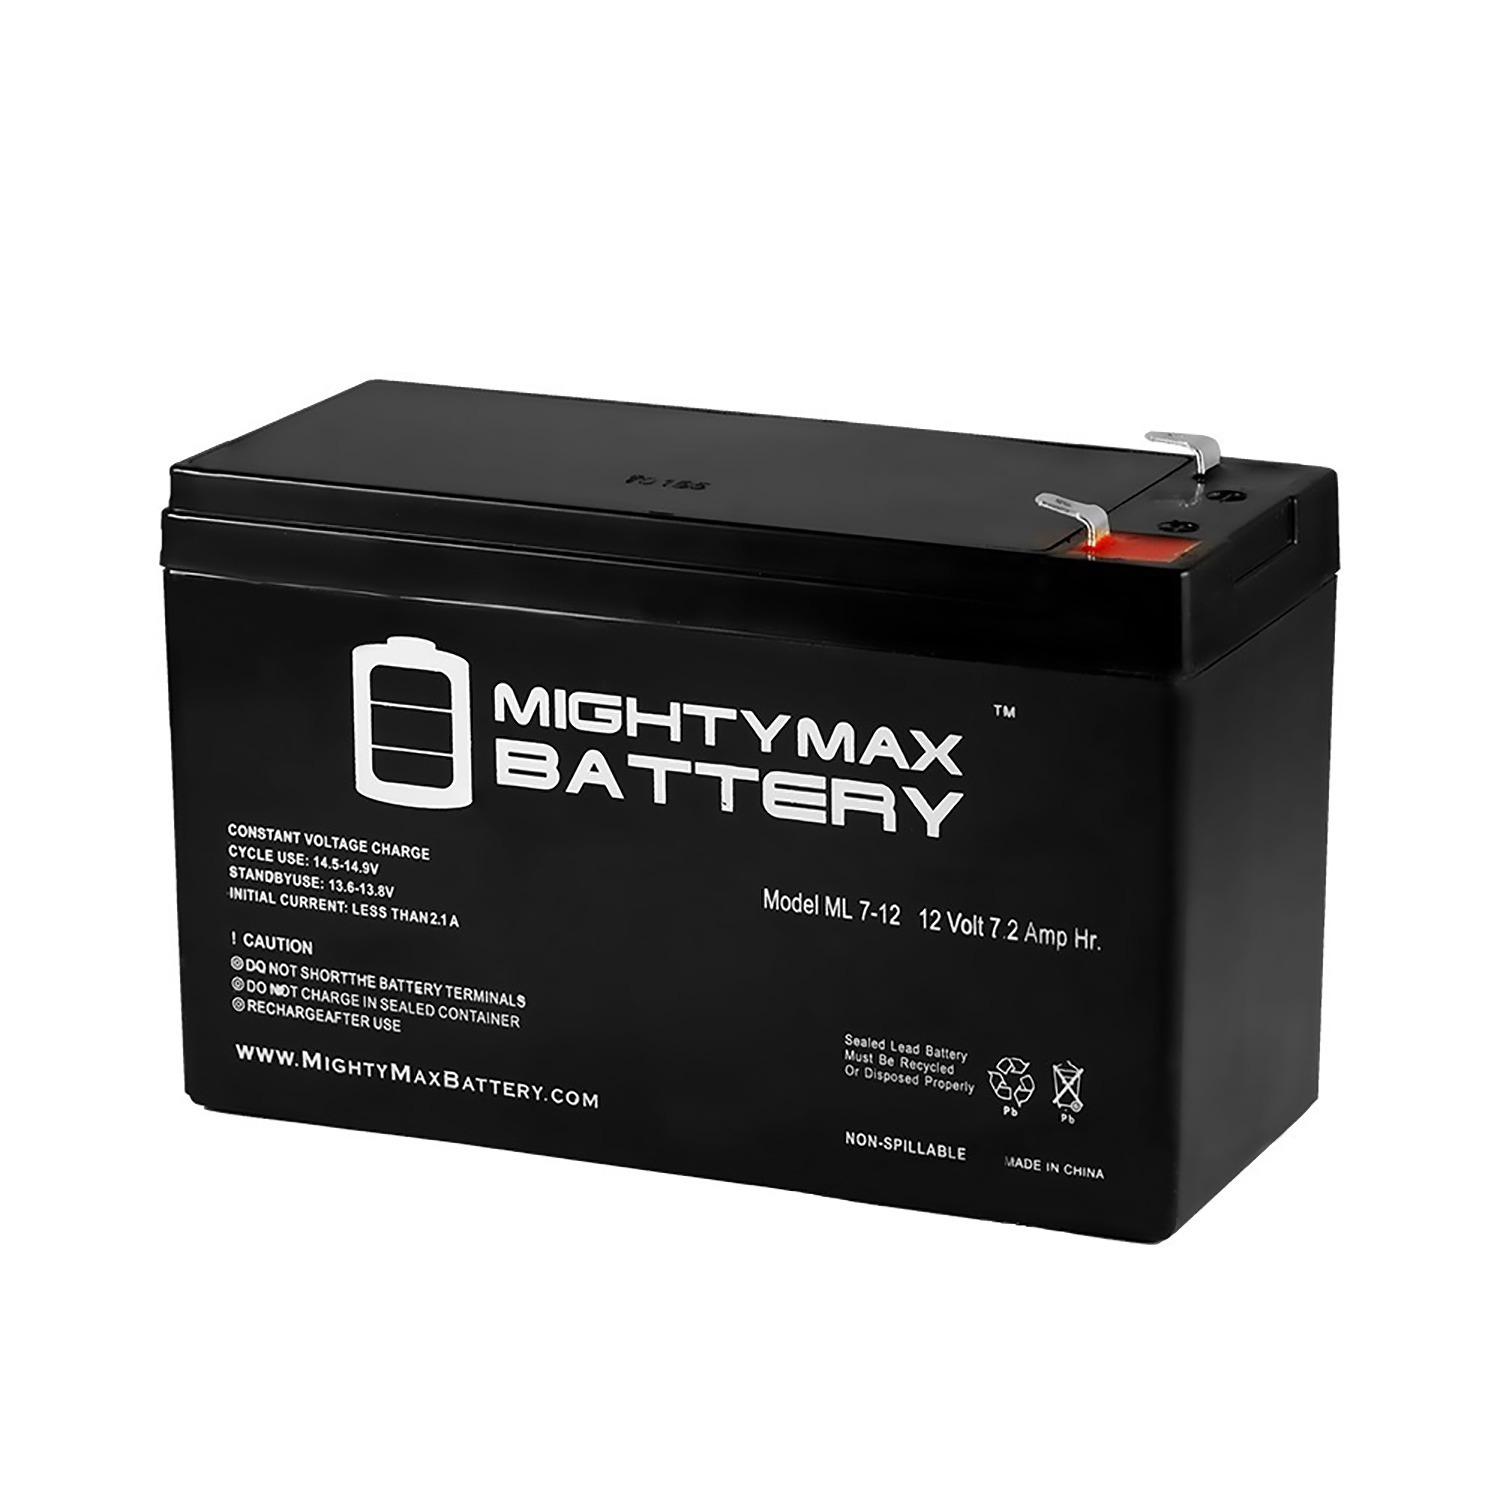 Mighty Max Battery 12V 7.2AH SLA Replacement Battery for Liebert GXT2 500RT-120-4 Pack Brand Product